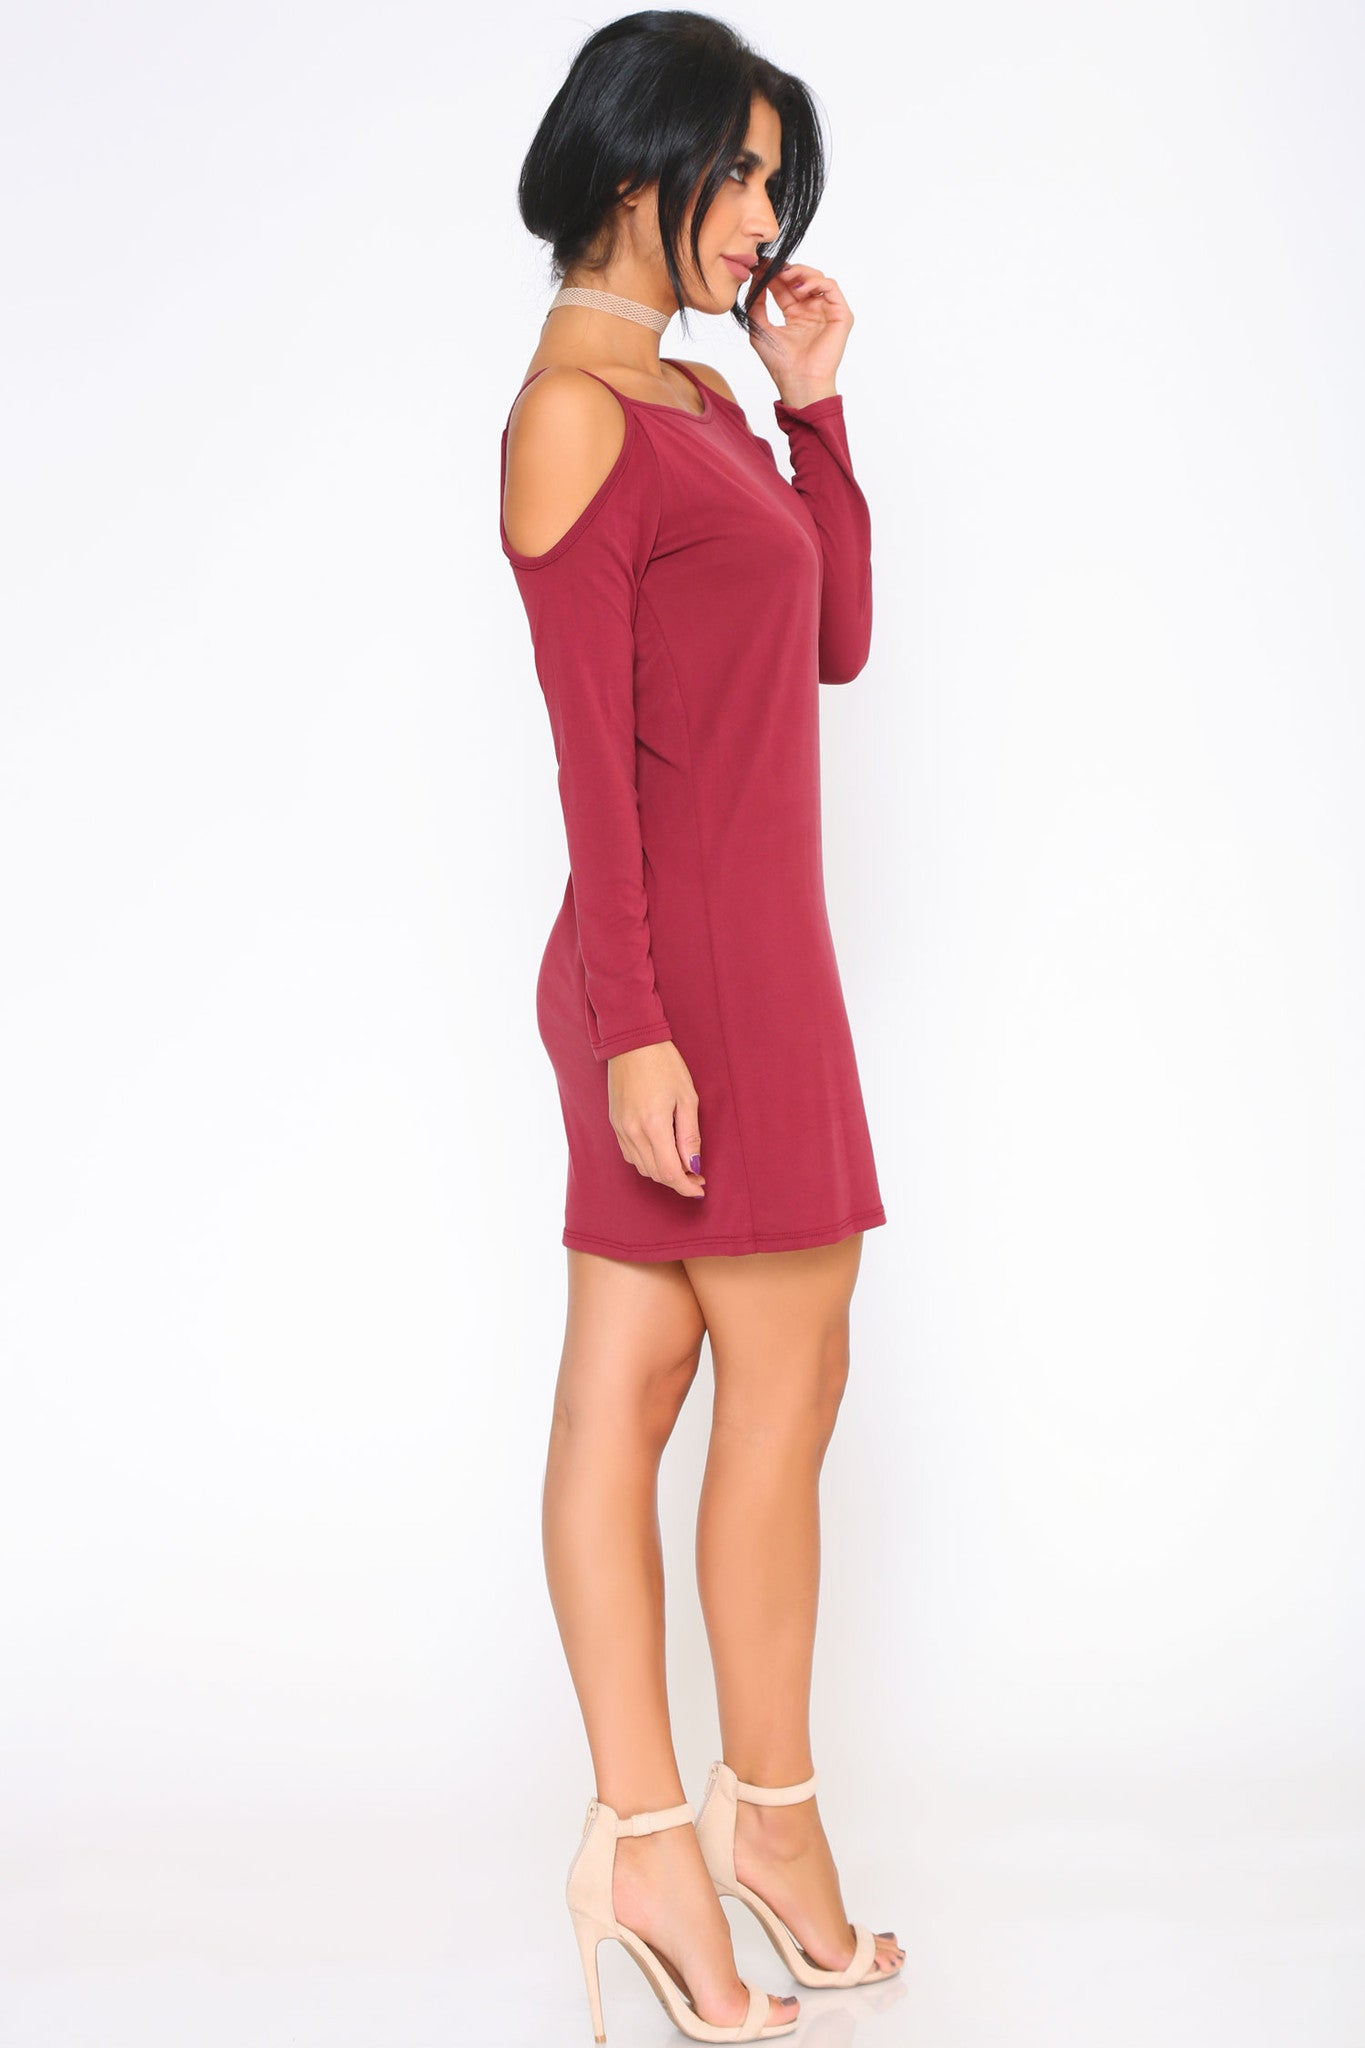 ARLETTE DRESS - Glam Envy - 2